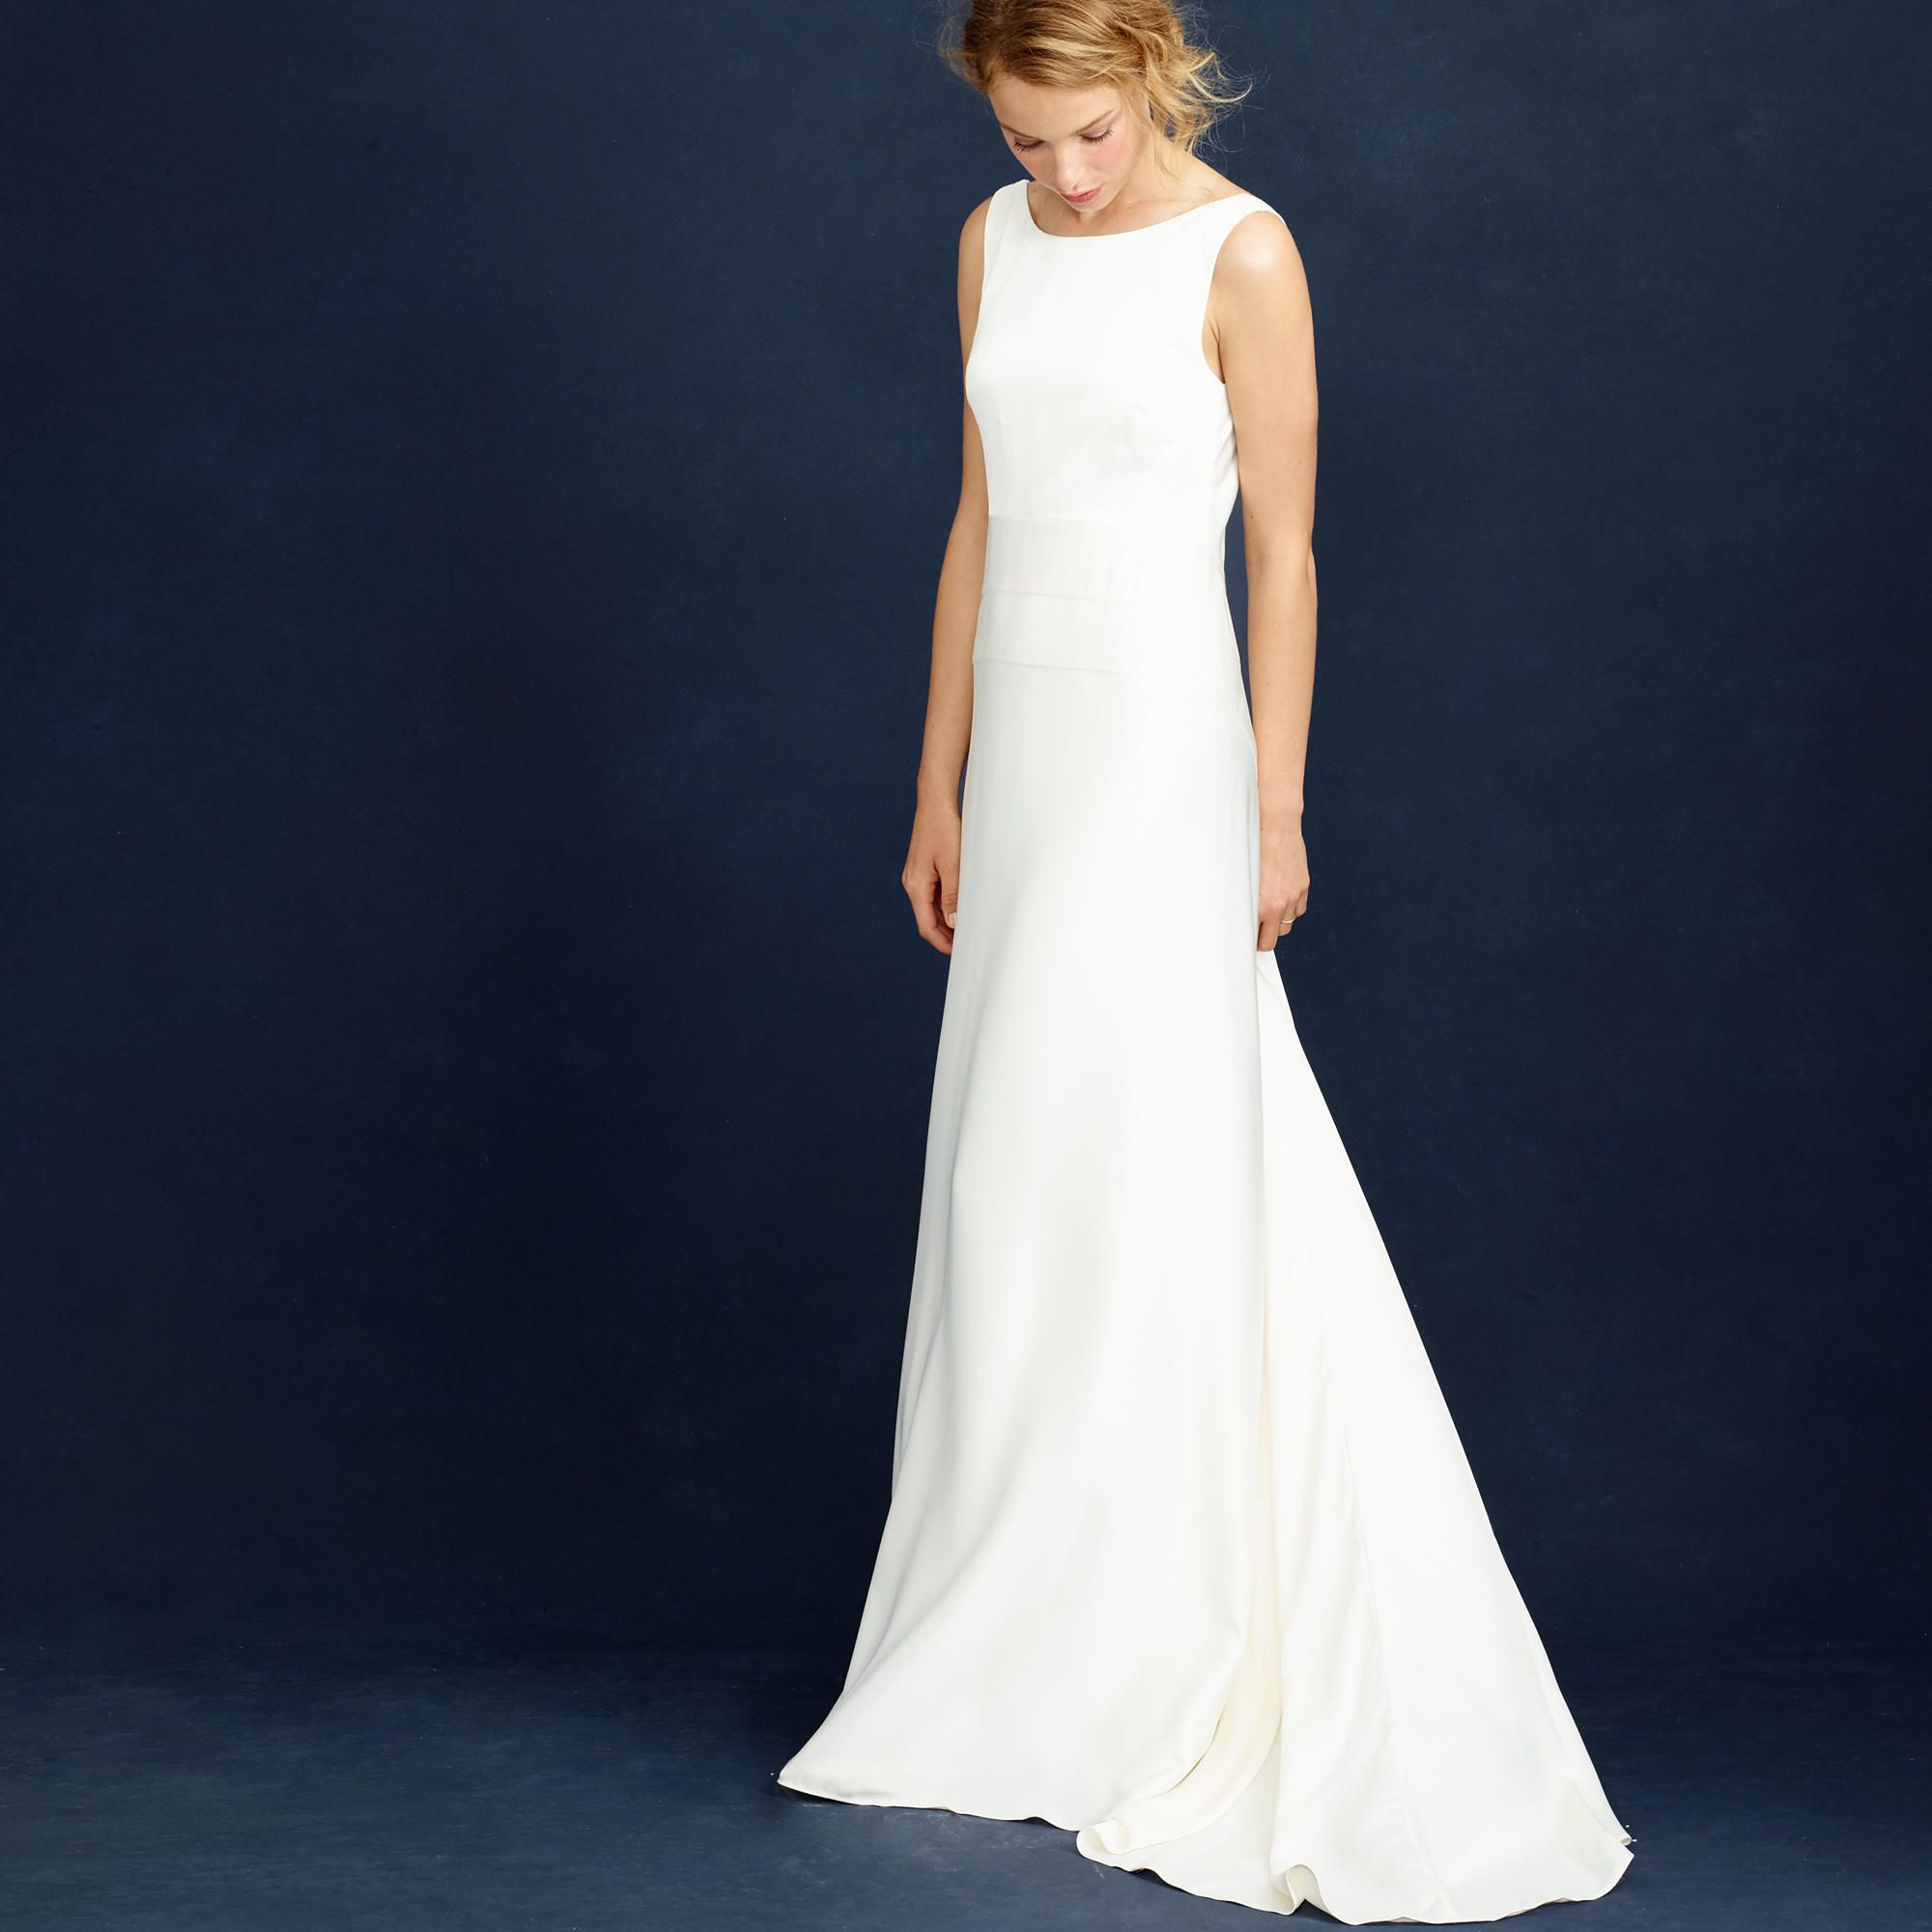 These 10 J. Crew Bridal Looks Will Have You All Daydreaming About ...